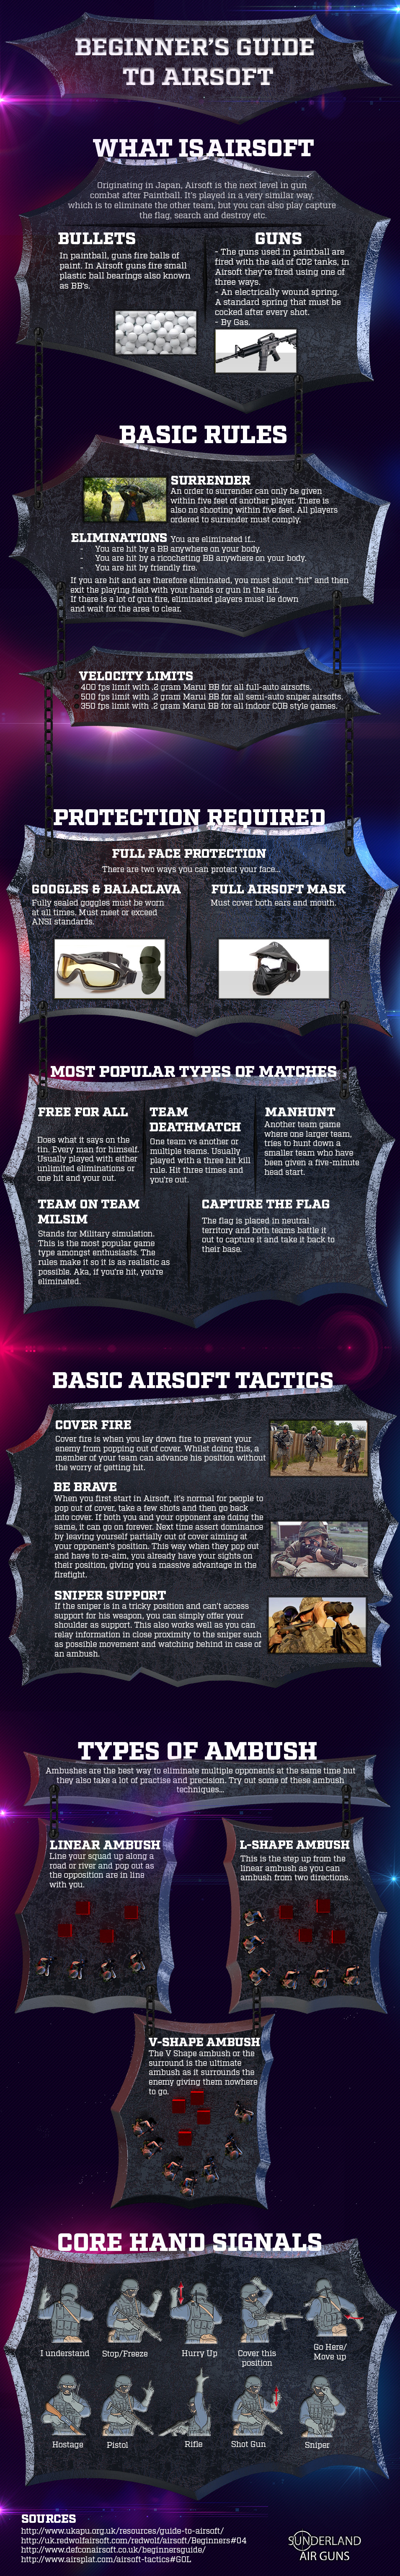 Beginners Guide To Airsoft [Infographic]